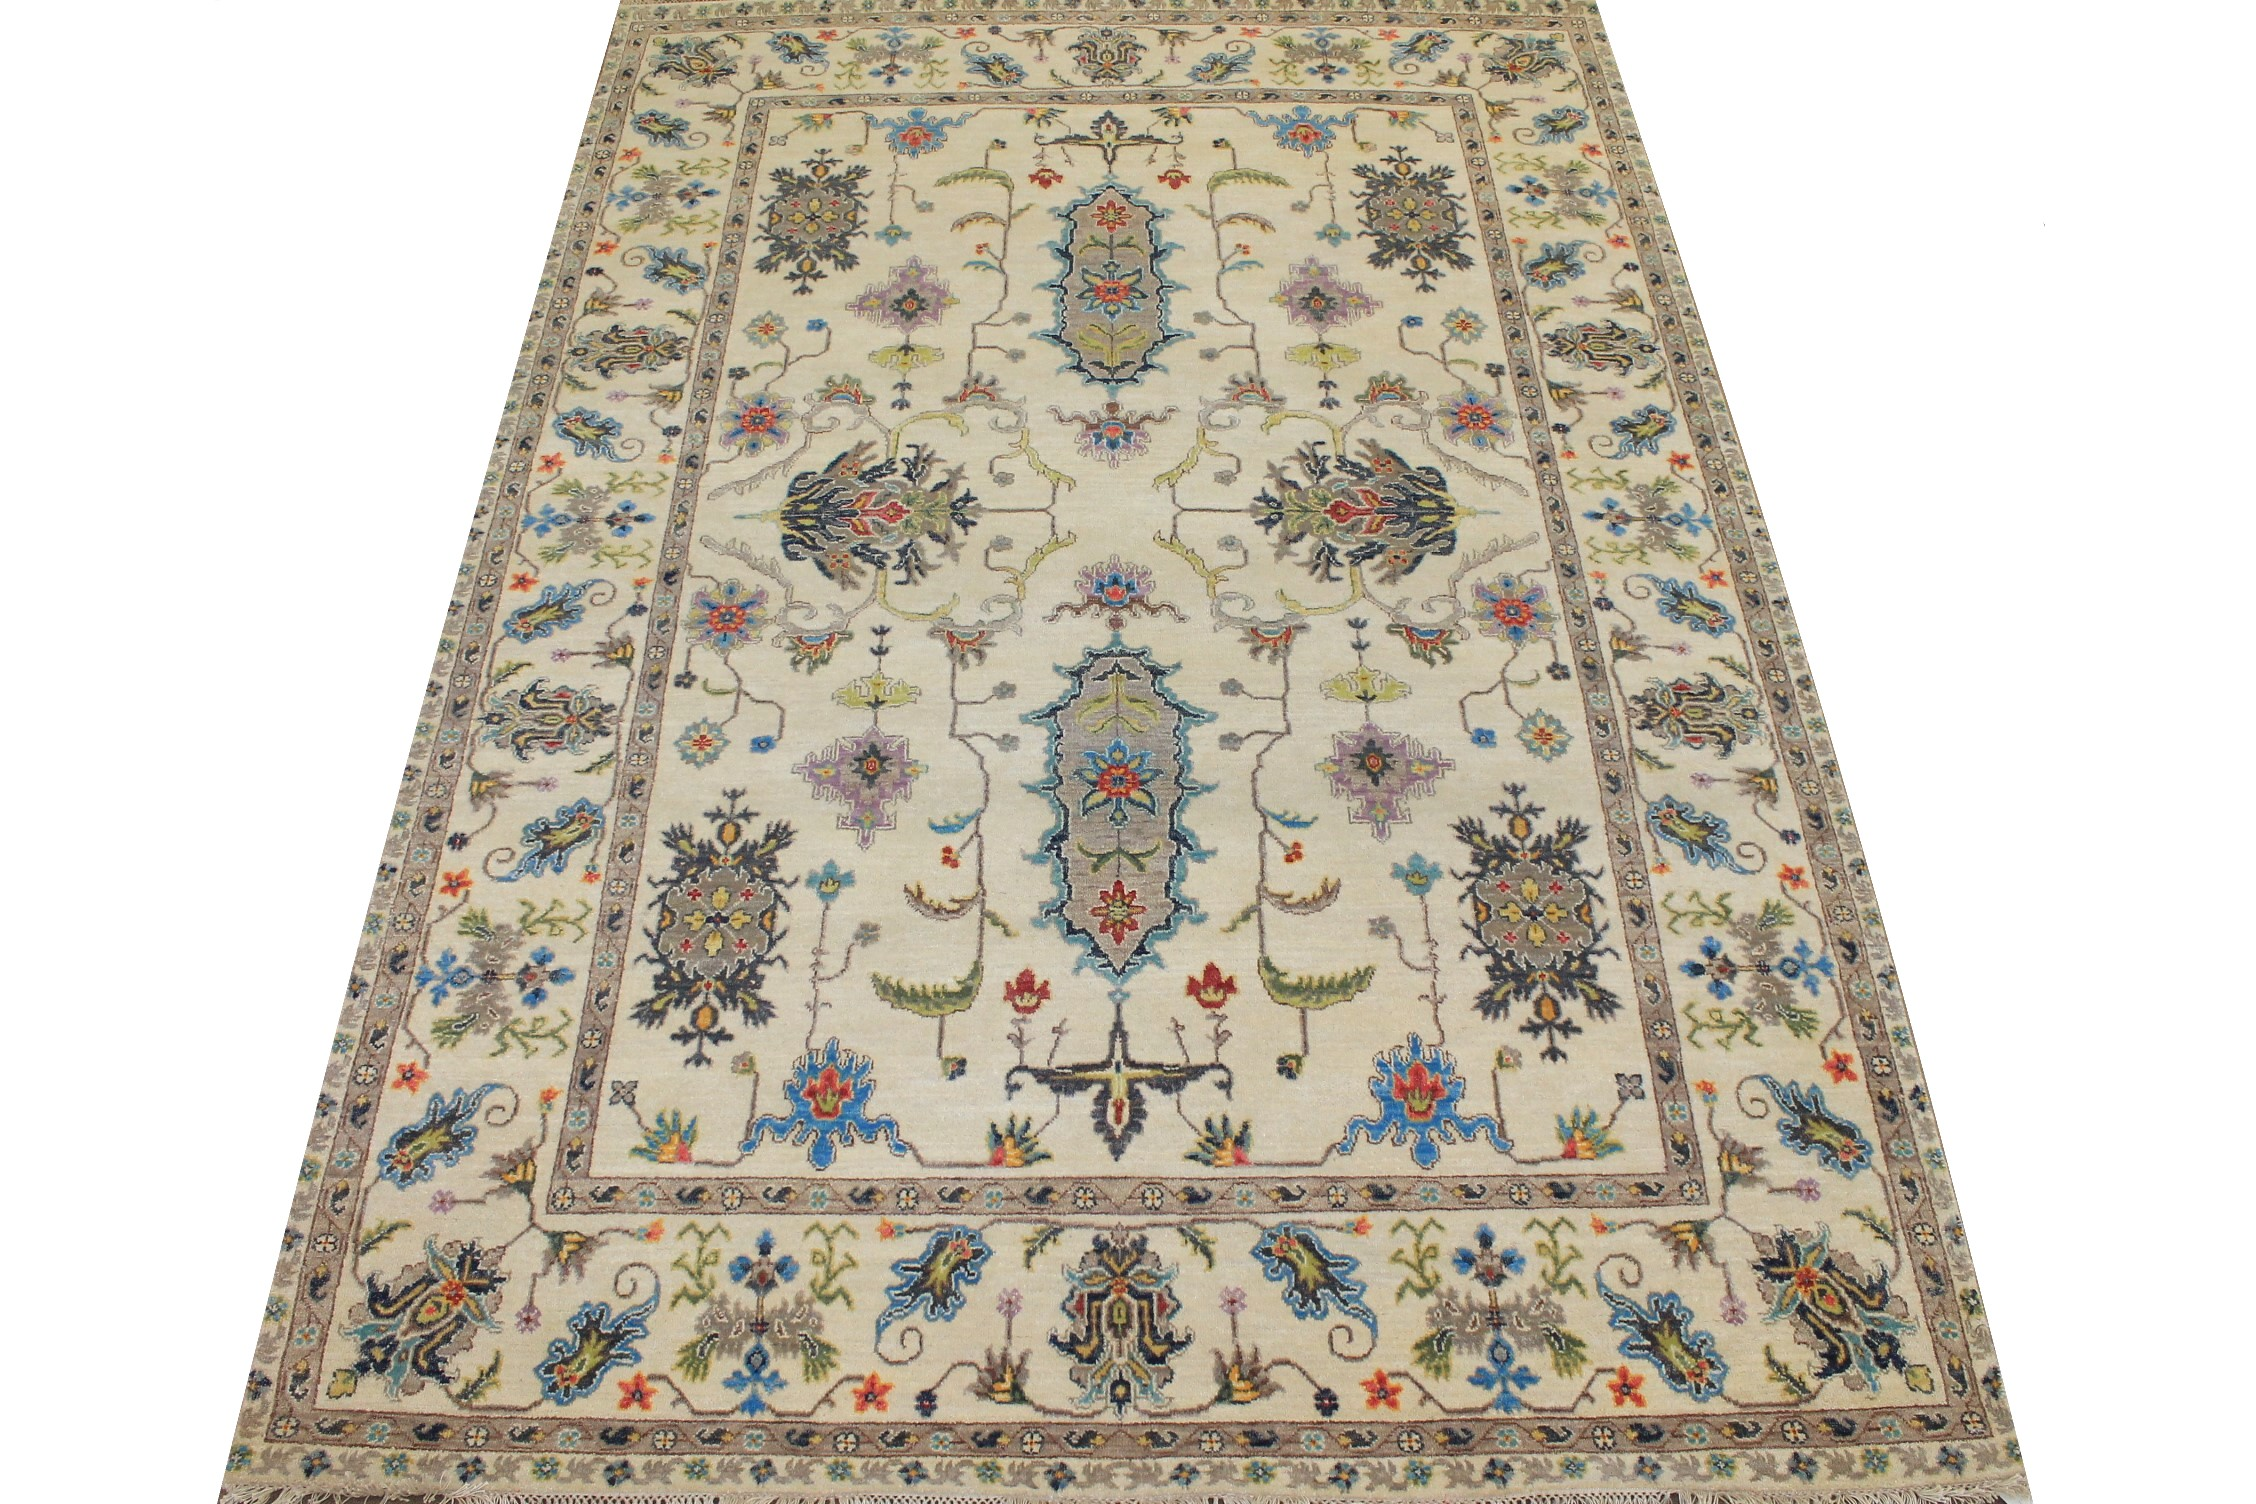 6x9 Traditional Hand Knotted Wool Area Rug - MR025050